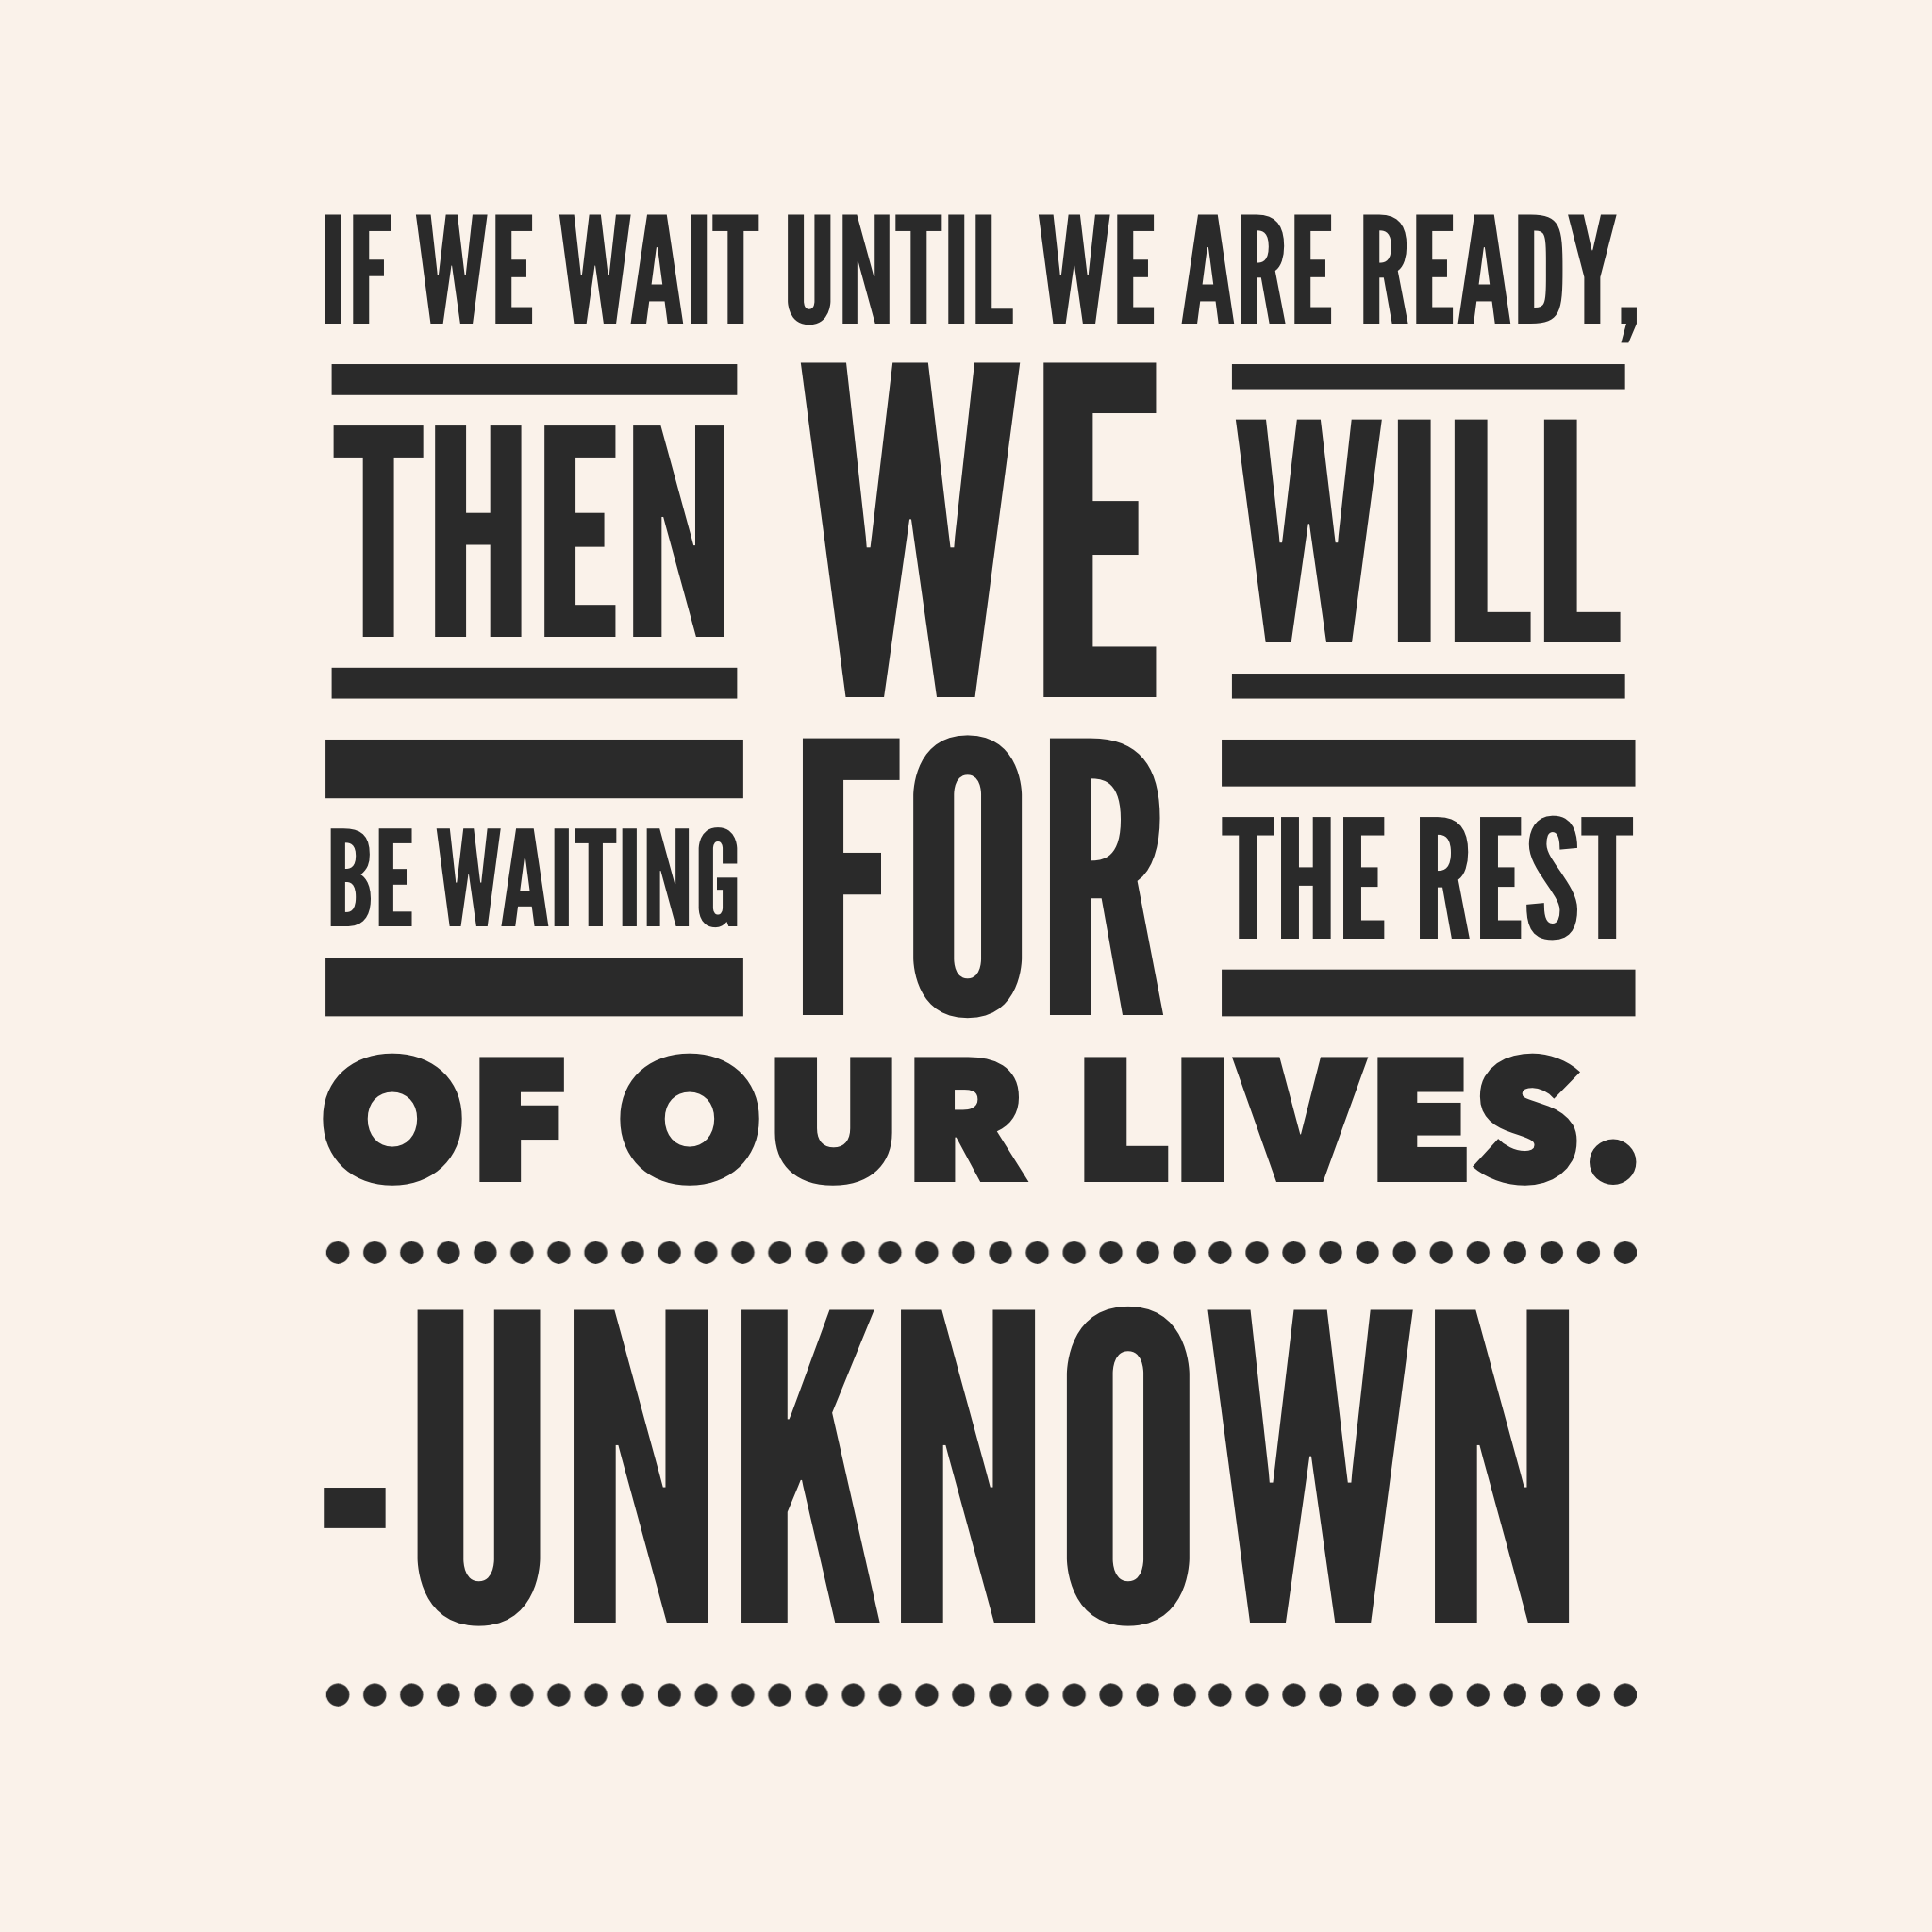 UNDERSTAND THAT WE WILL NEVER BE READY.